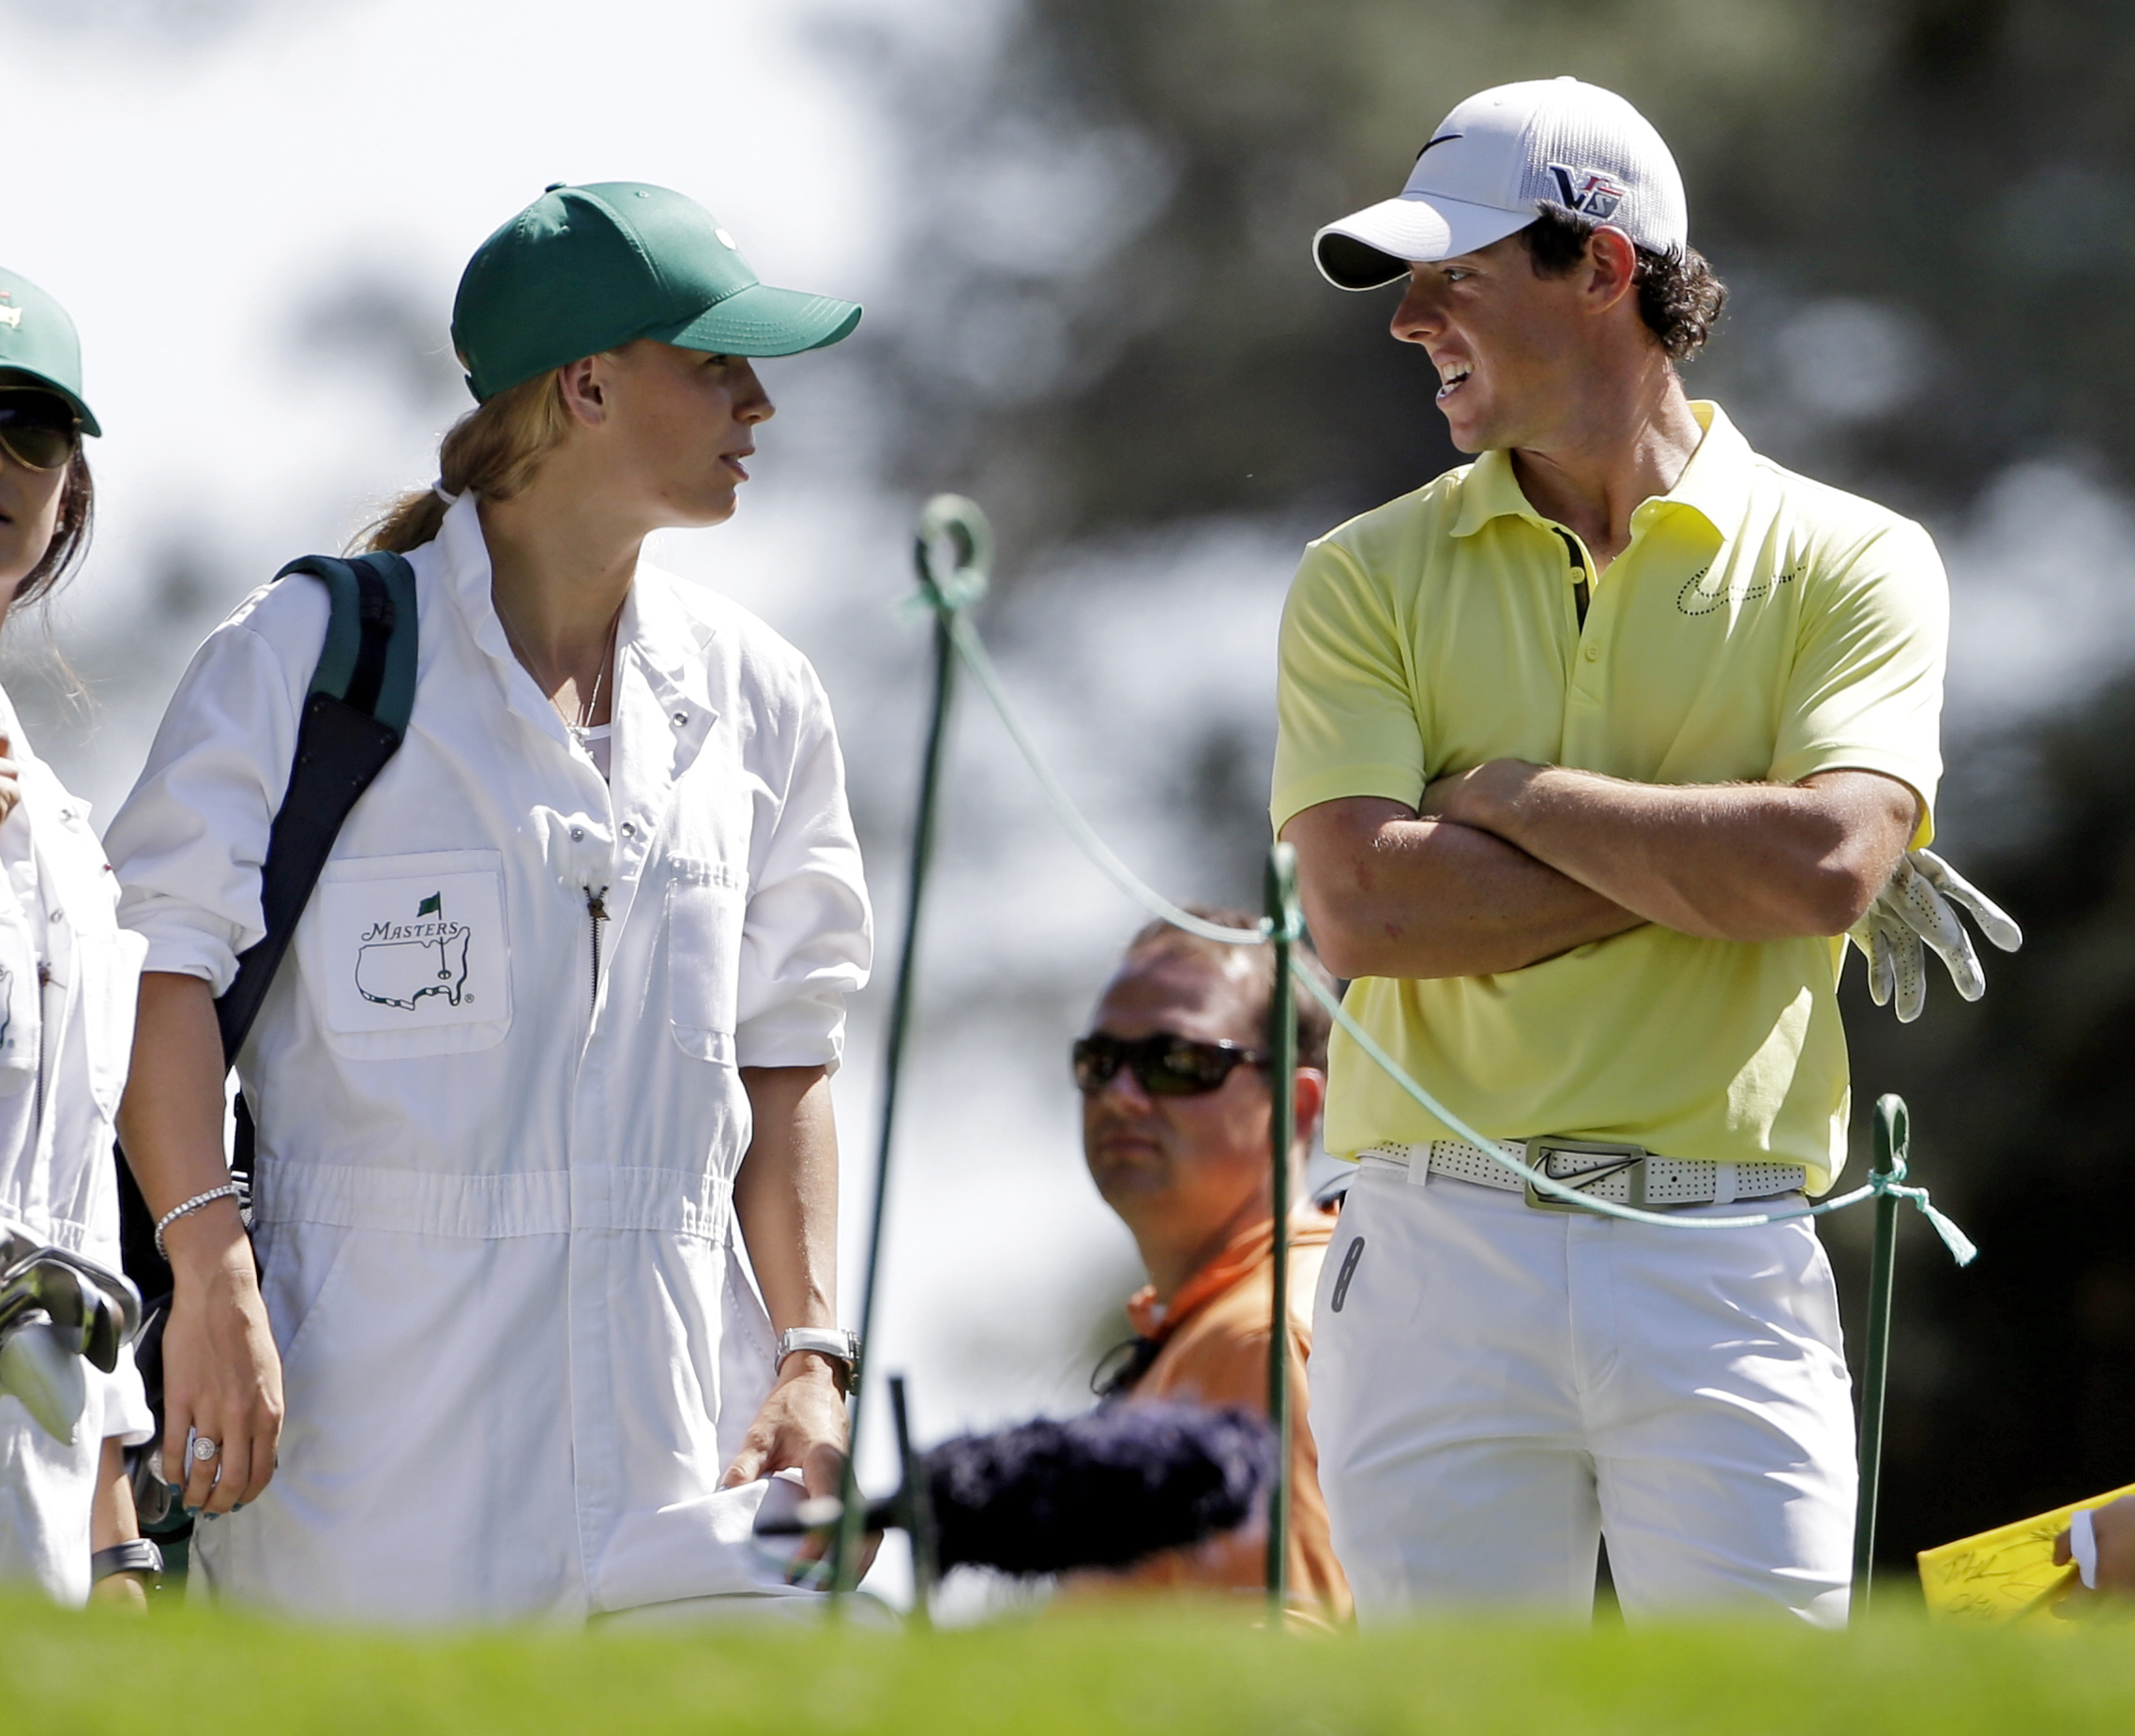 Rory McIlroy, of Northern Ireland, speaks with tennis player Caroline Wozniacki who caddied for him during the par three competition before the Masters golf tournament in Augusta, Ga. on April 10, 2013.